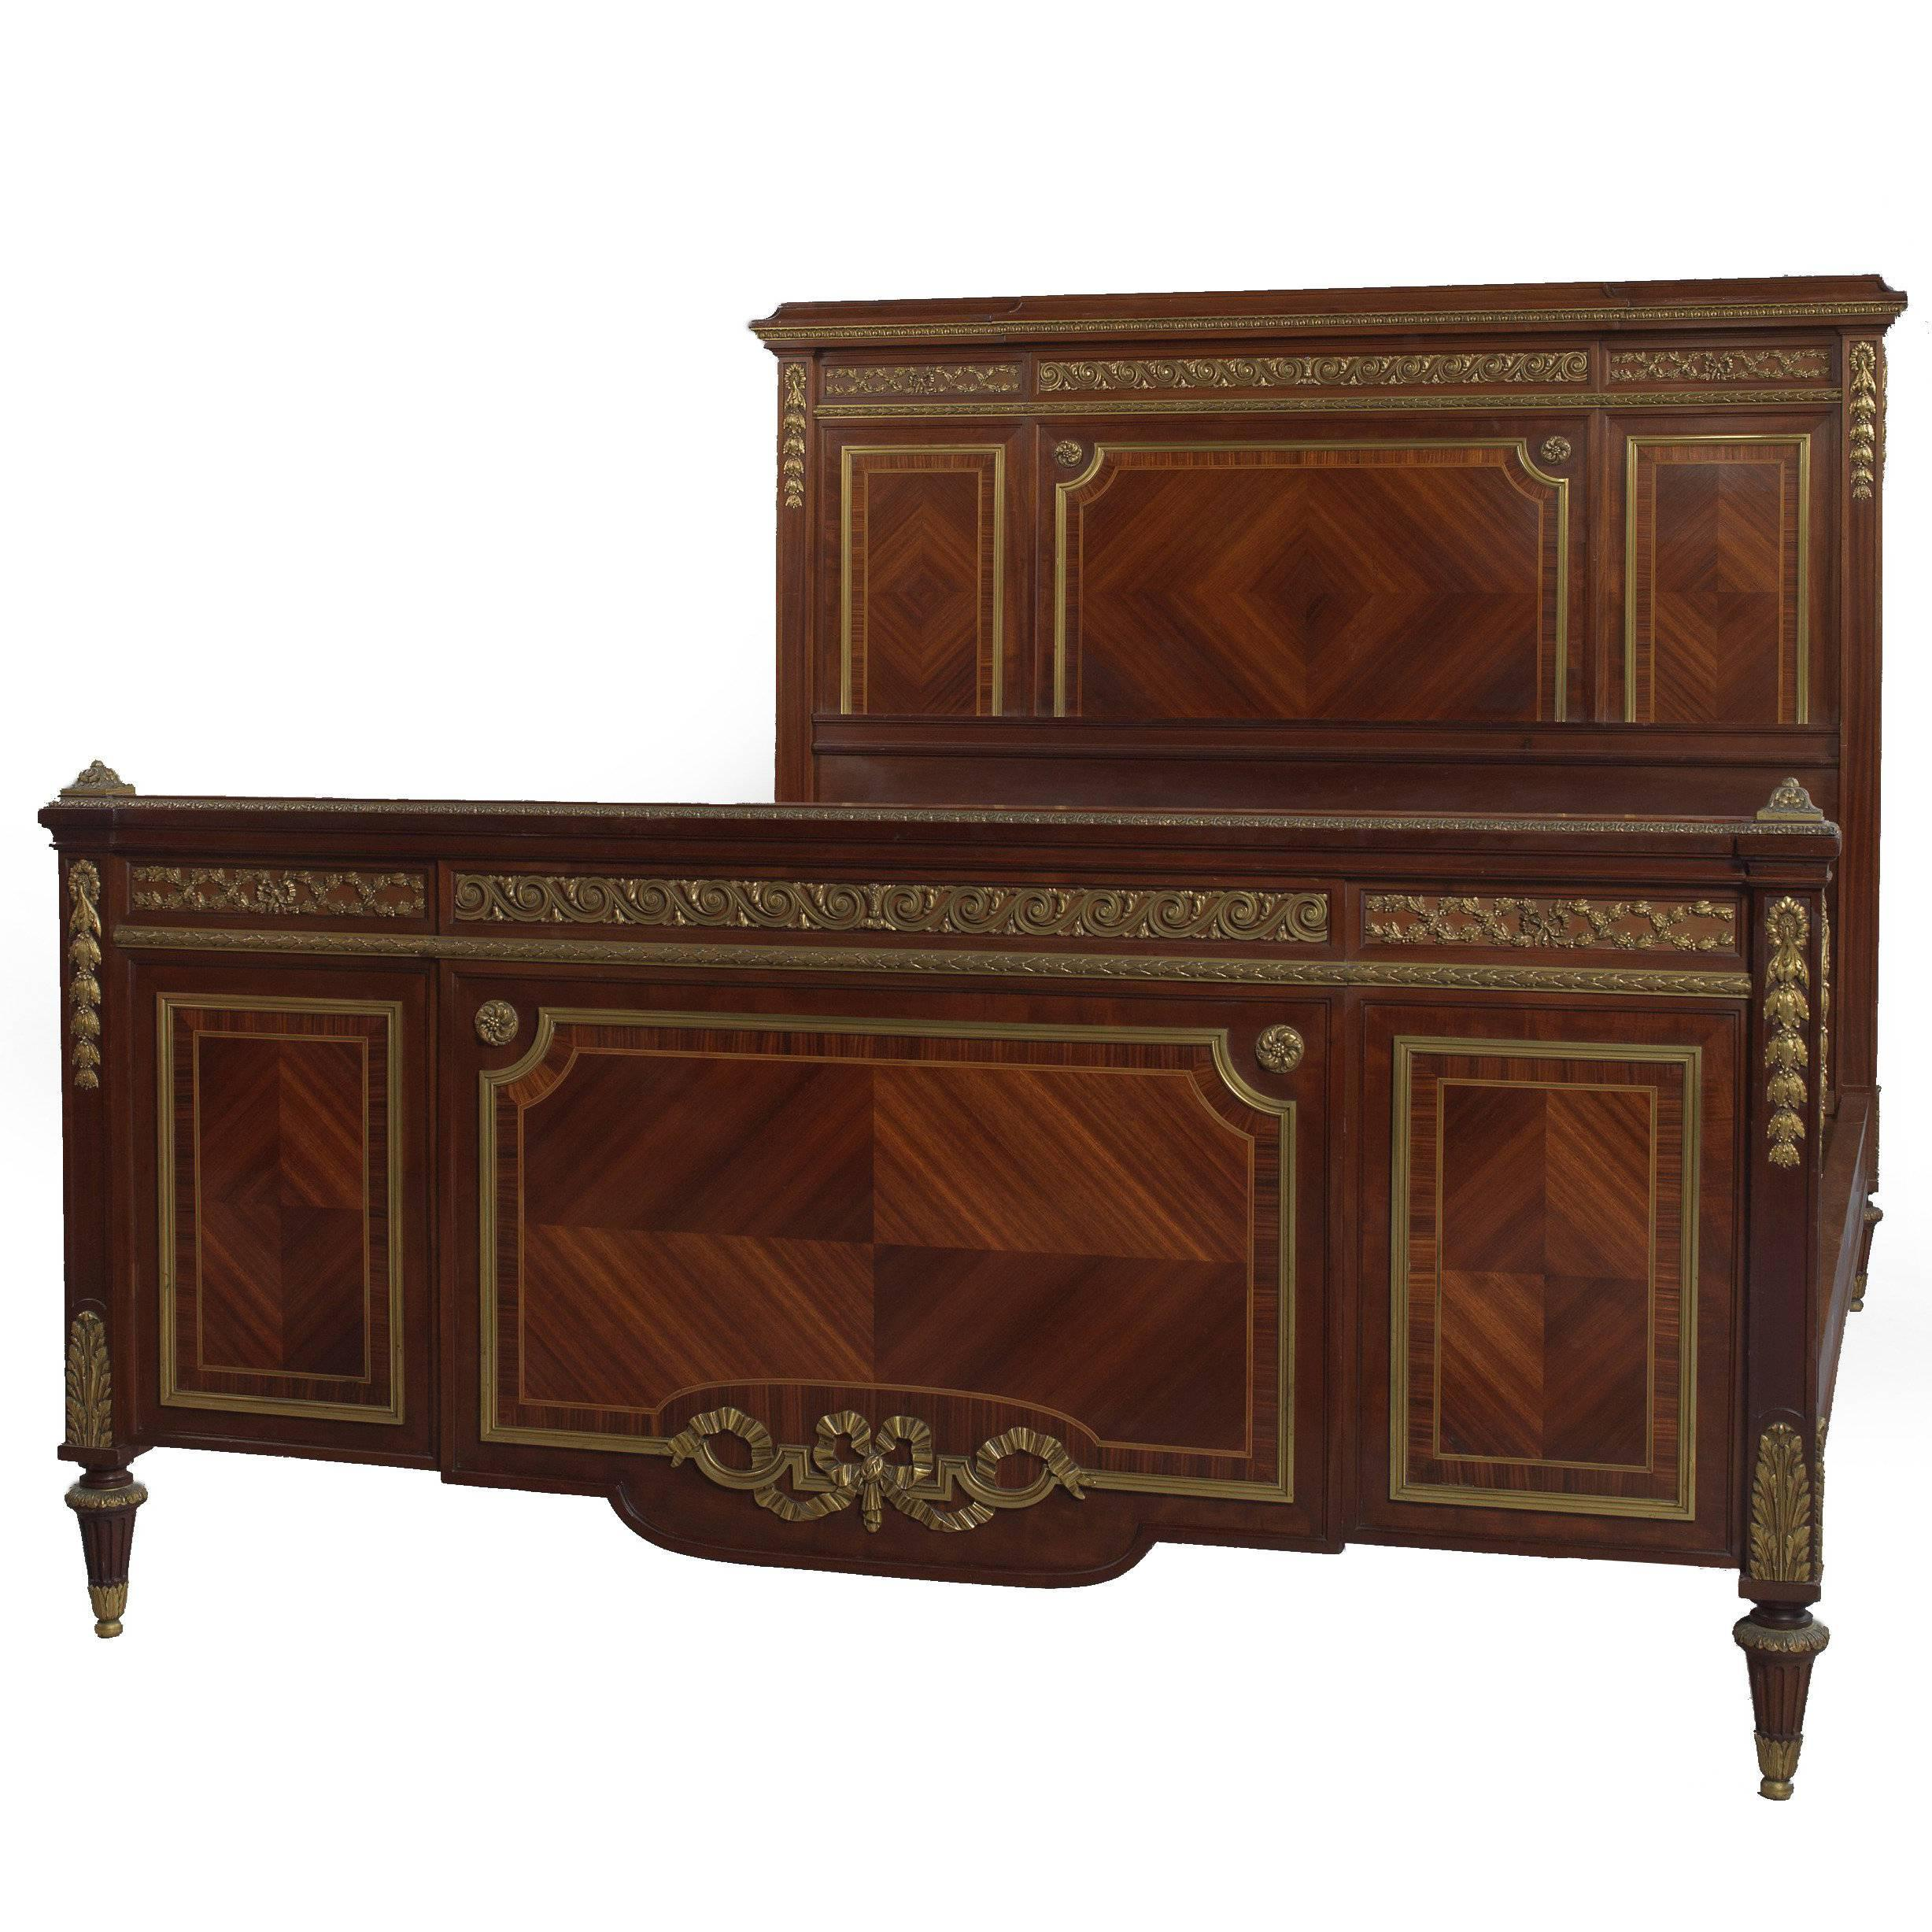 Louis XVI Style Mahogany Double Bed by